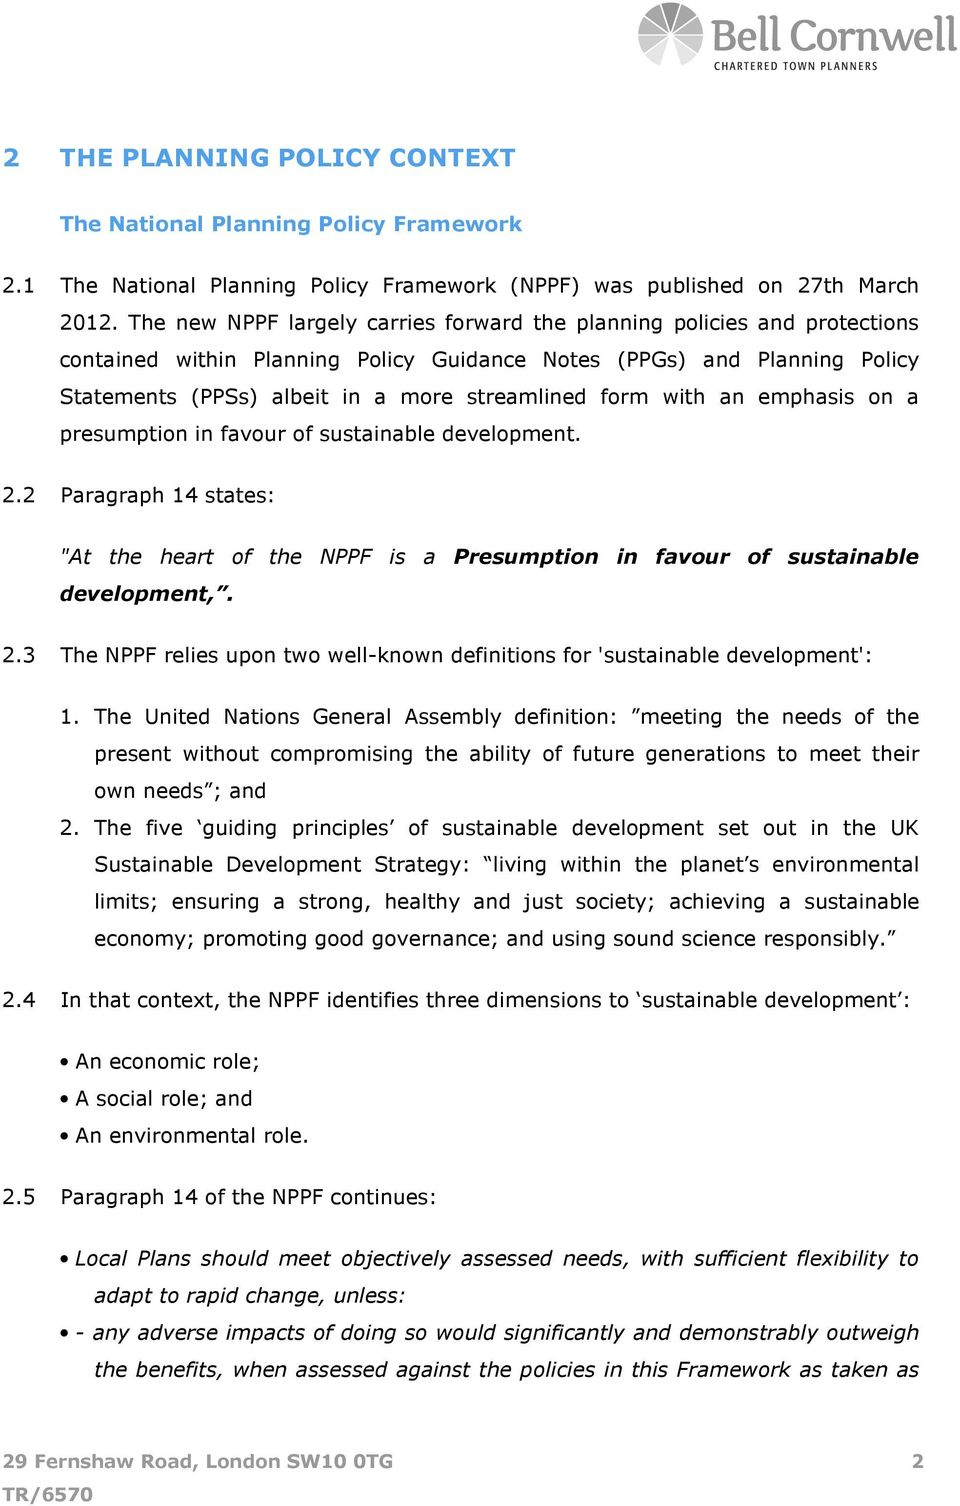 "form with an emphasis on a presumption in favour of sustainable development. 2.2 Paragraph 14 states: ""At the heart of the NPPF is a Presumption in favour of sustainable development,. 2.3 The NPPF relies upon two well-known definitions for 'sustainable development': 1."